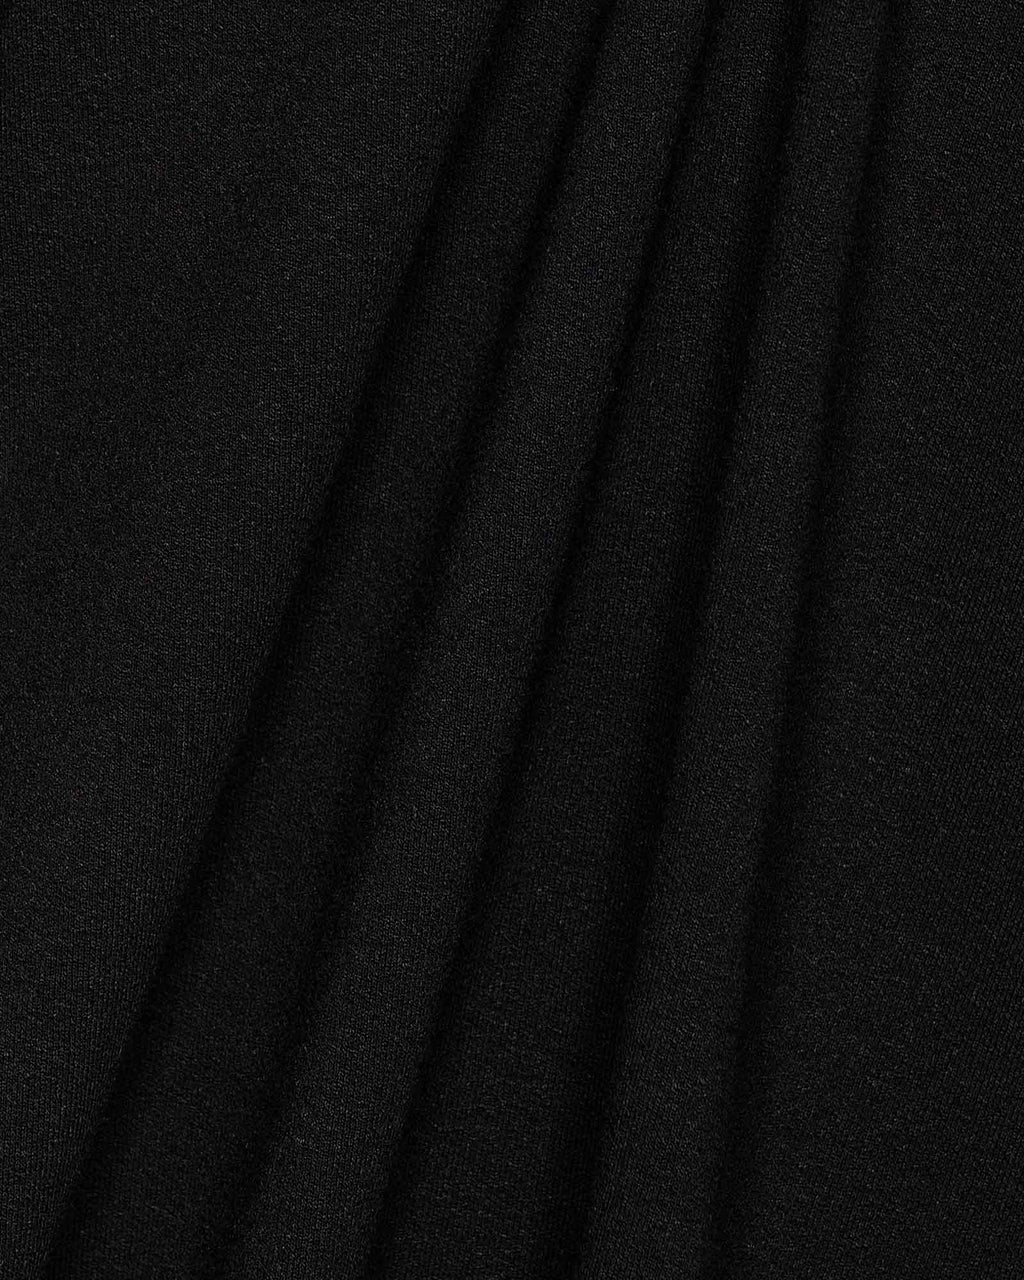 variant_1 | EN Black Shirt with shoulder patches Women won hundred | DE Schwarzes Shirt mit Schulterpolstern Damen won hundred